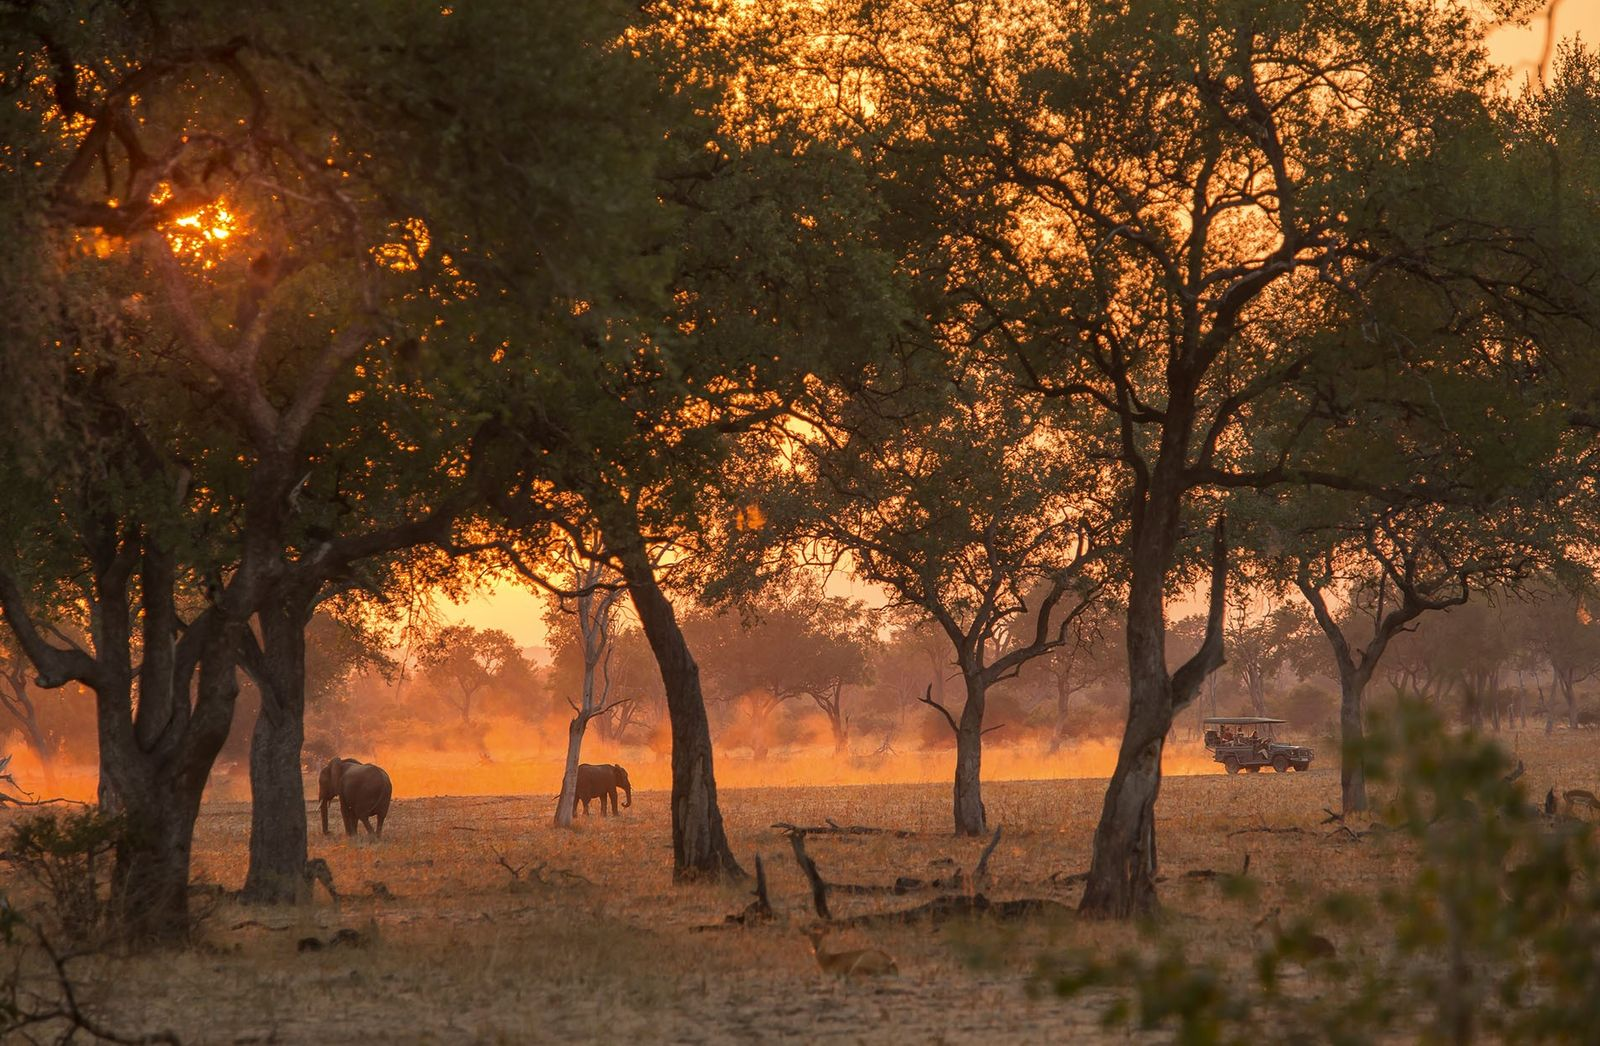 A safari vehicle passes a pair of elephants at sunset in South Luangwa National Park, Zambia.